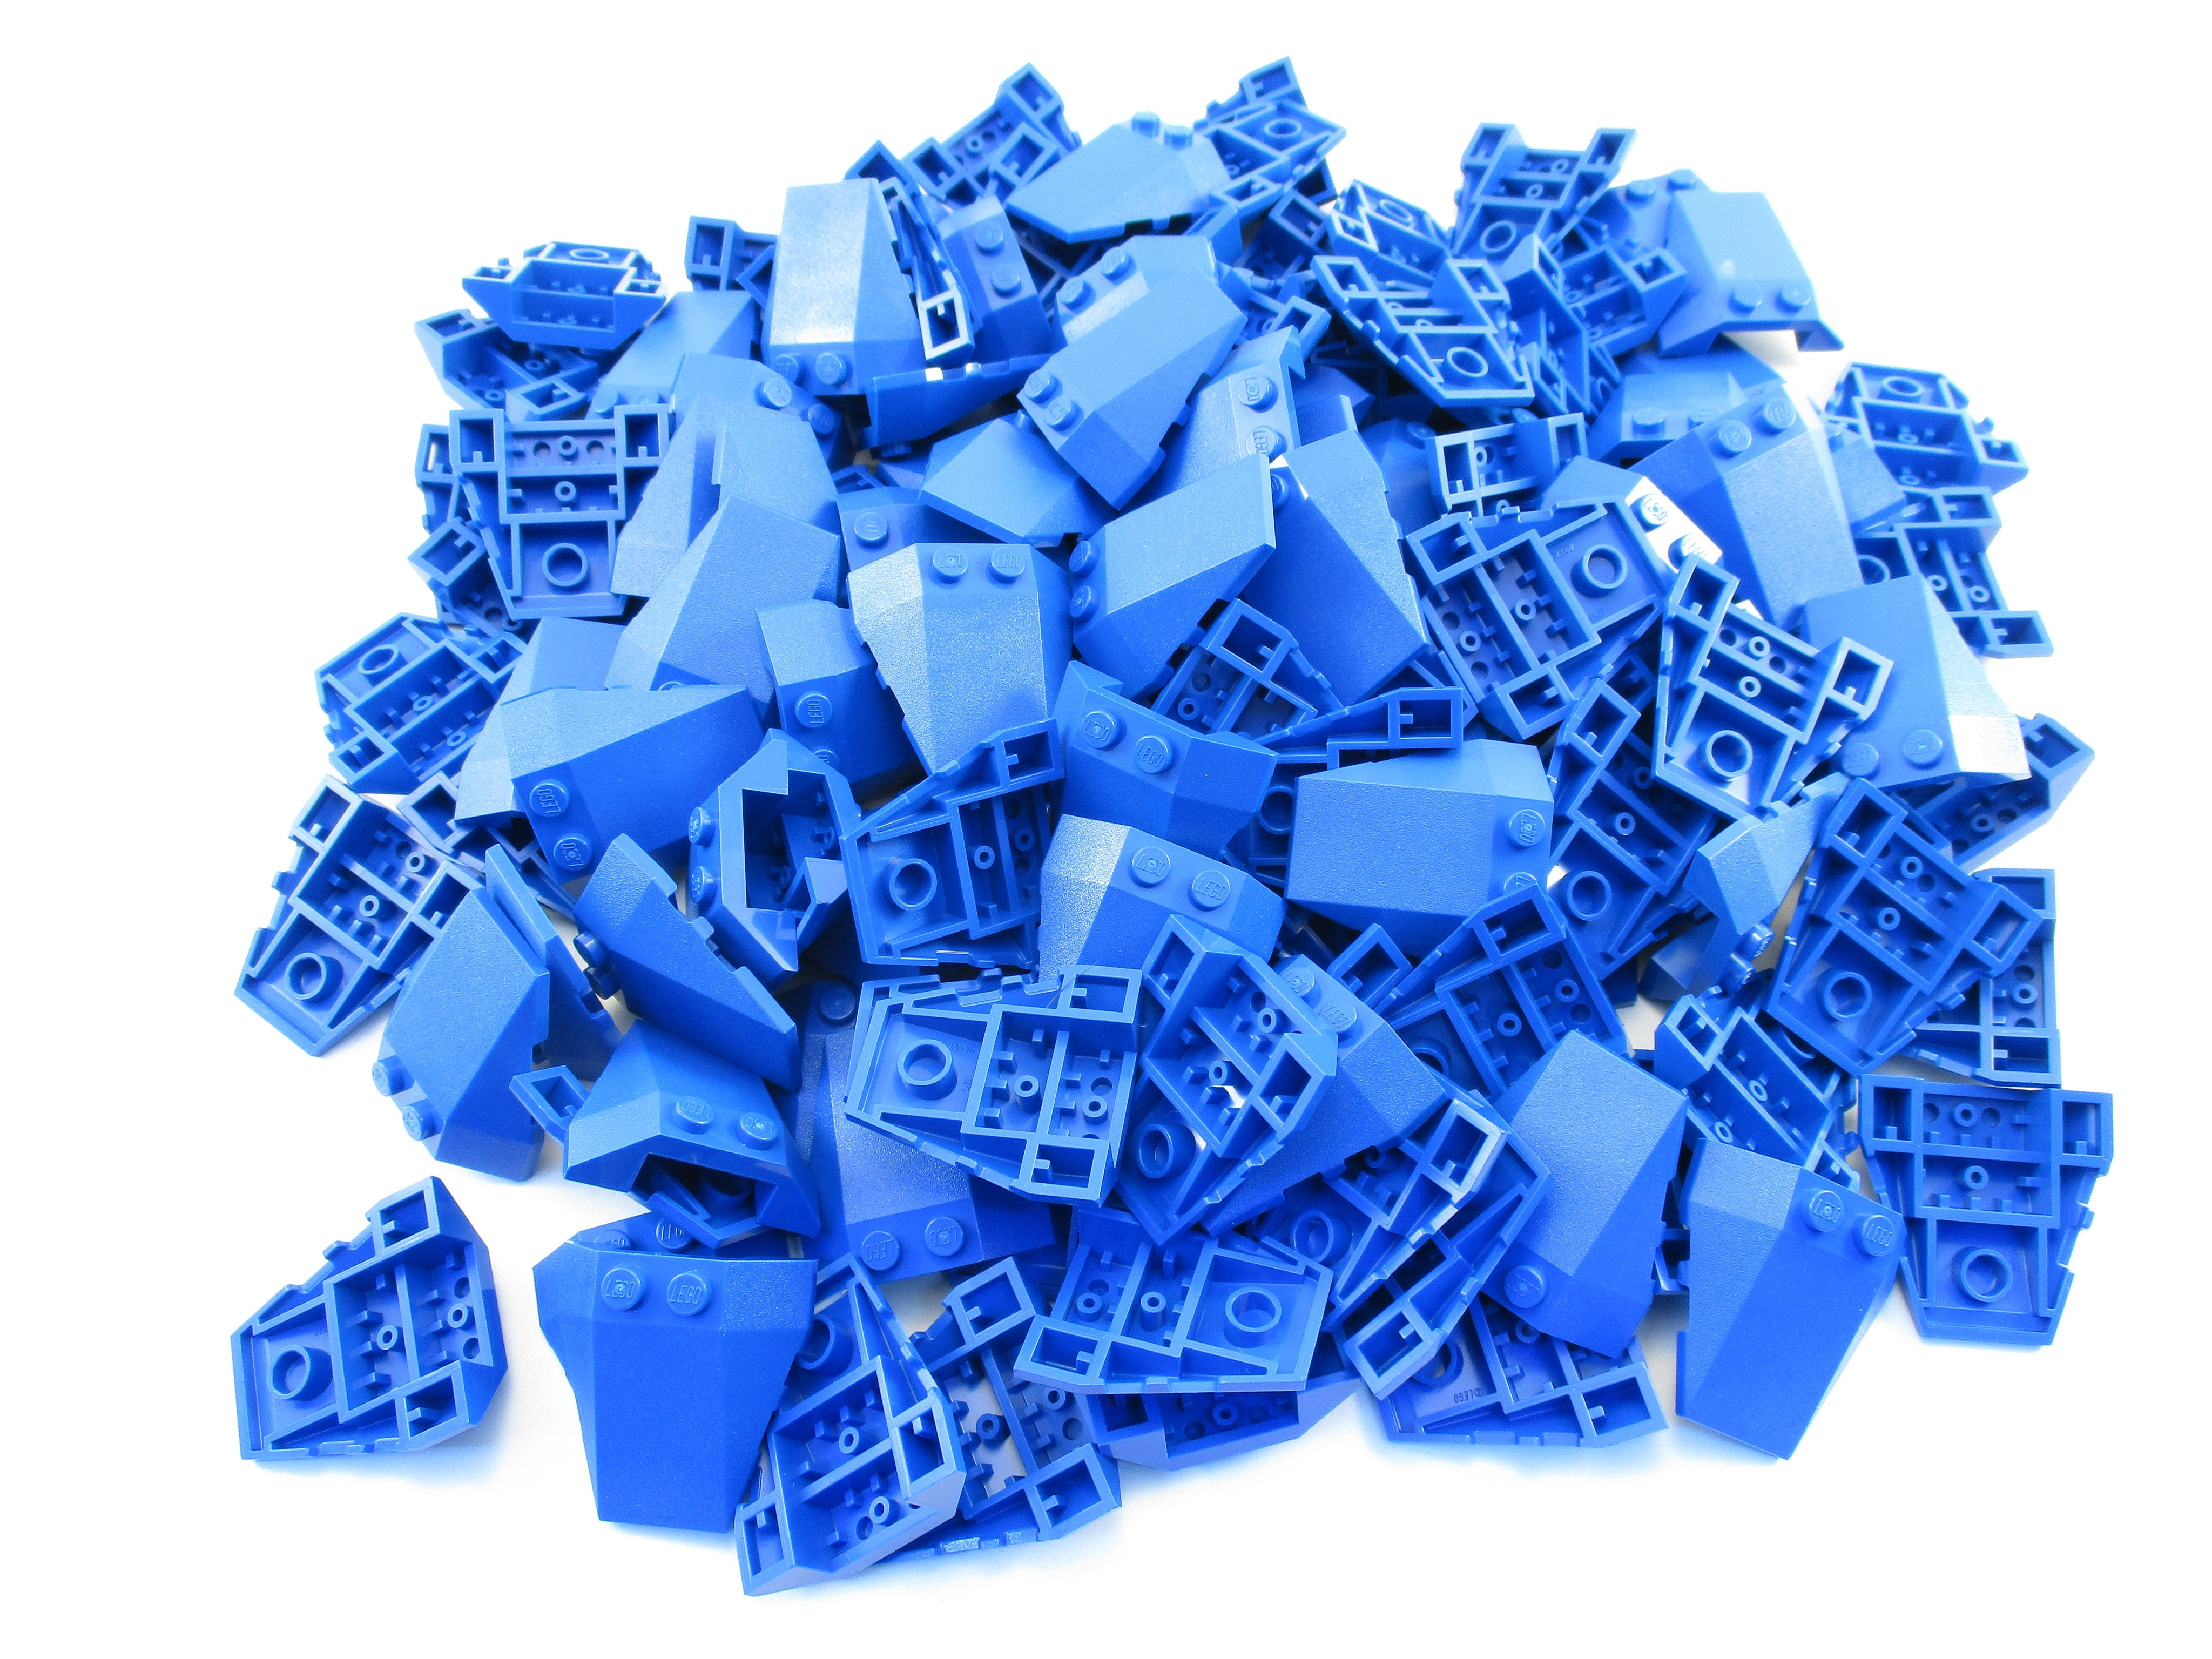 LEGO Blue Wedge 4x4 Triple with Stud Notches Lot of 100 Parts Pieces 48933